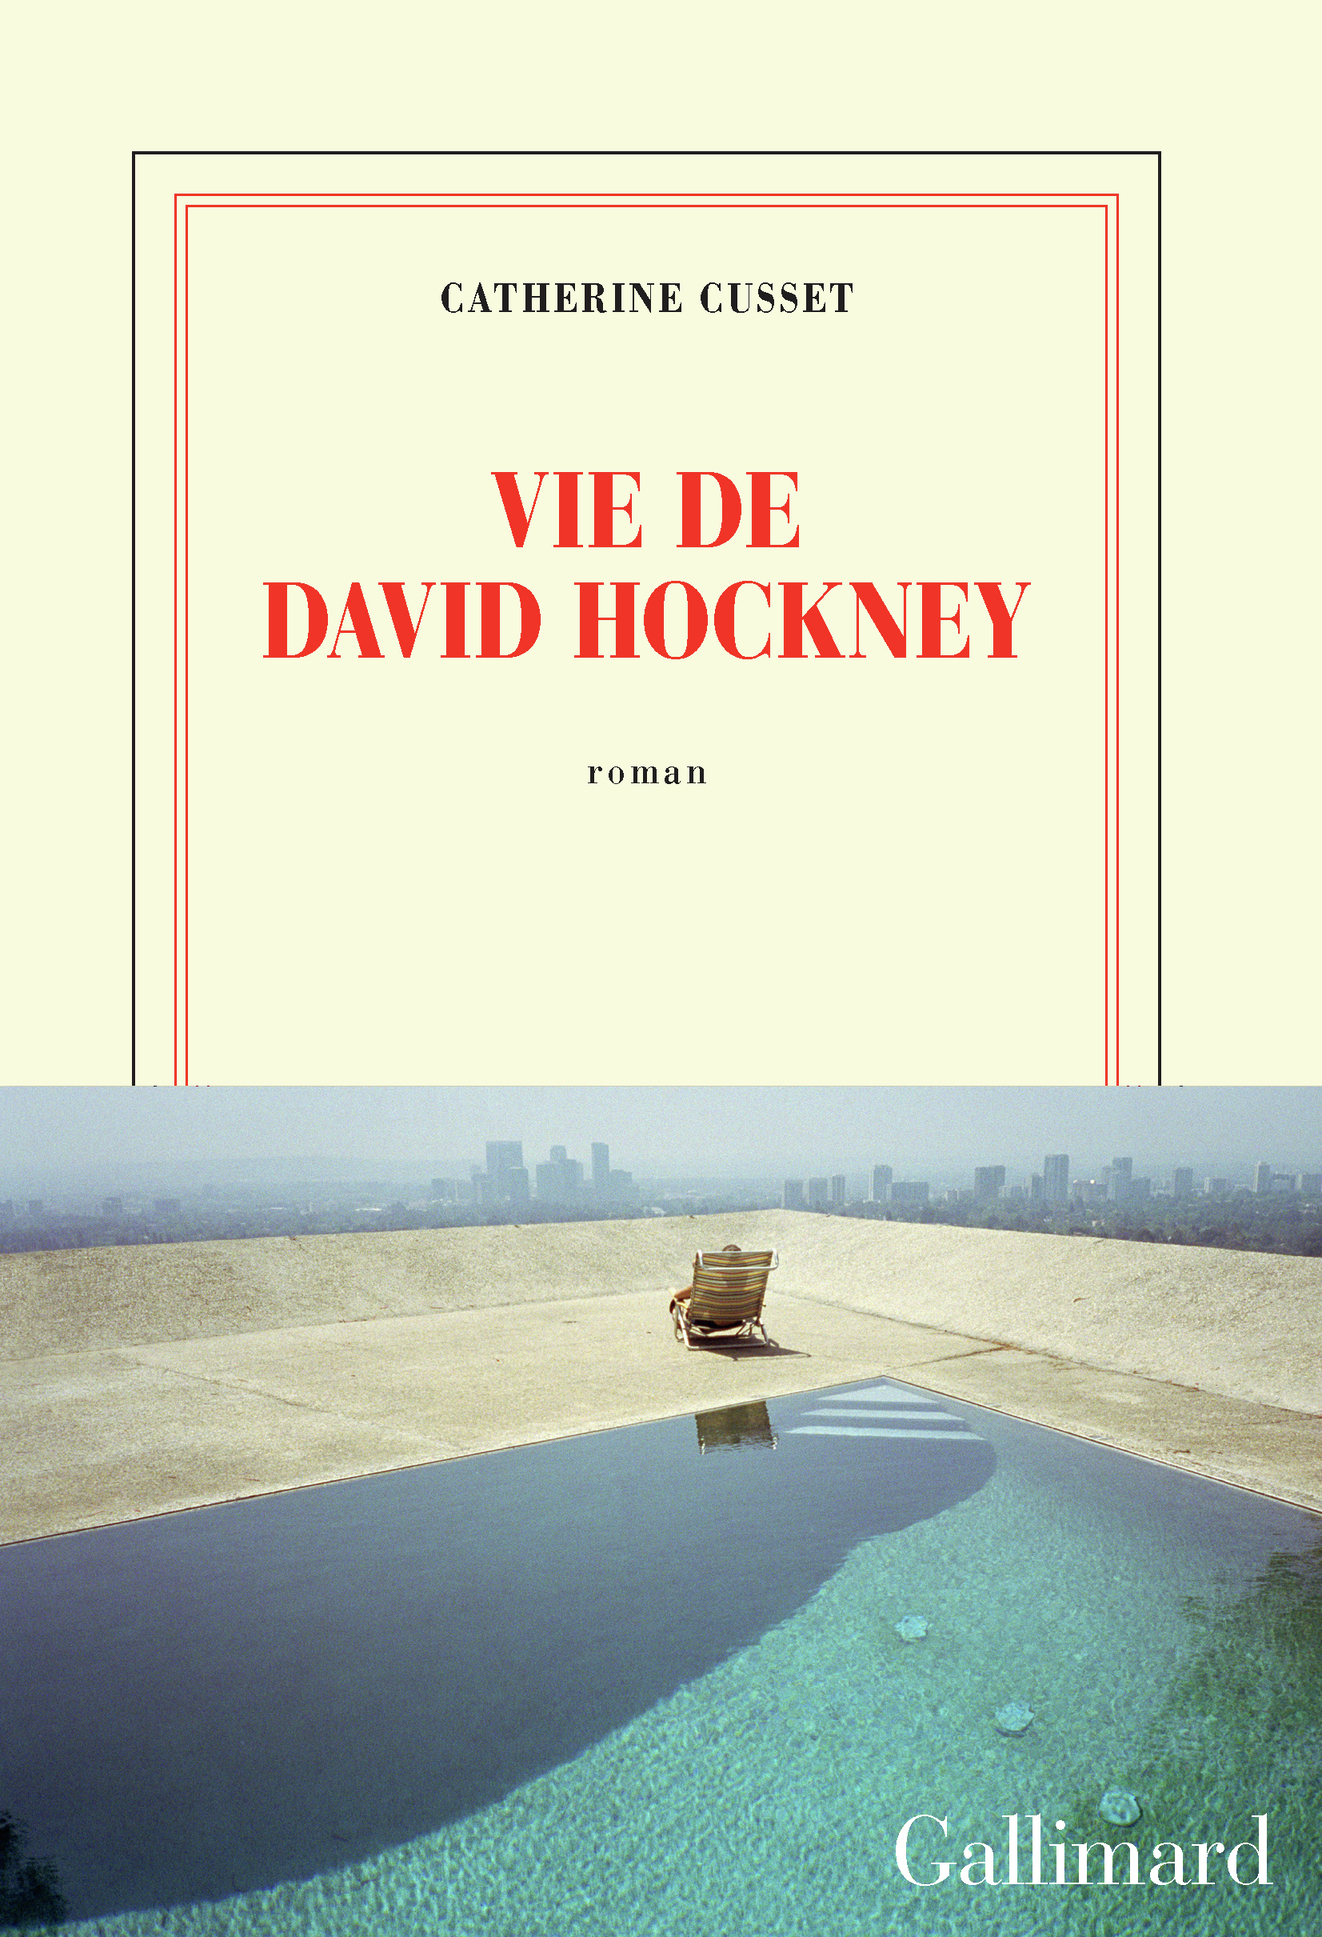 VIE DE DAVID HOCKNEY